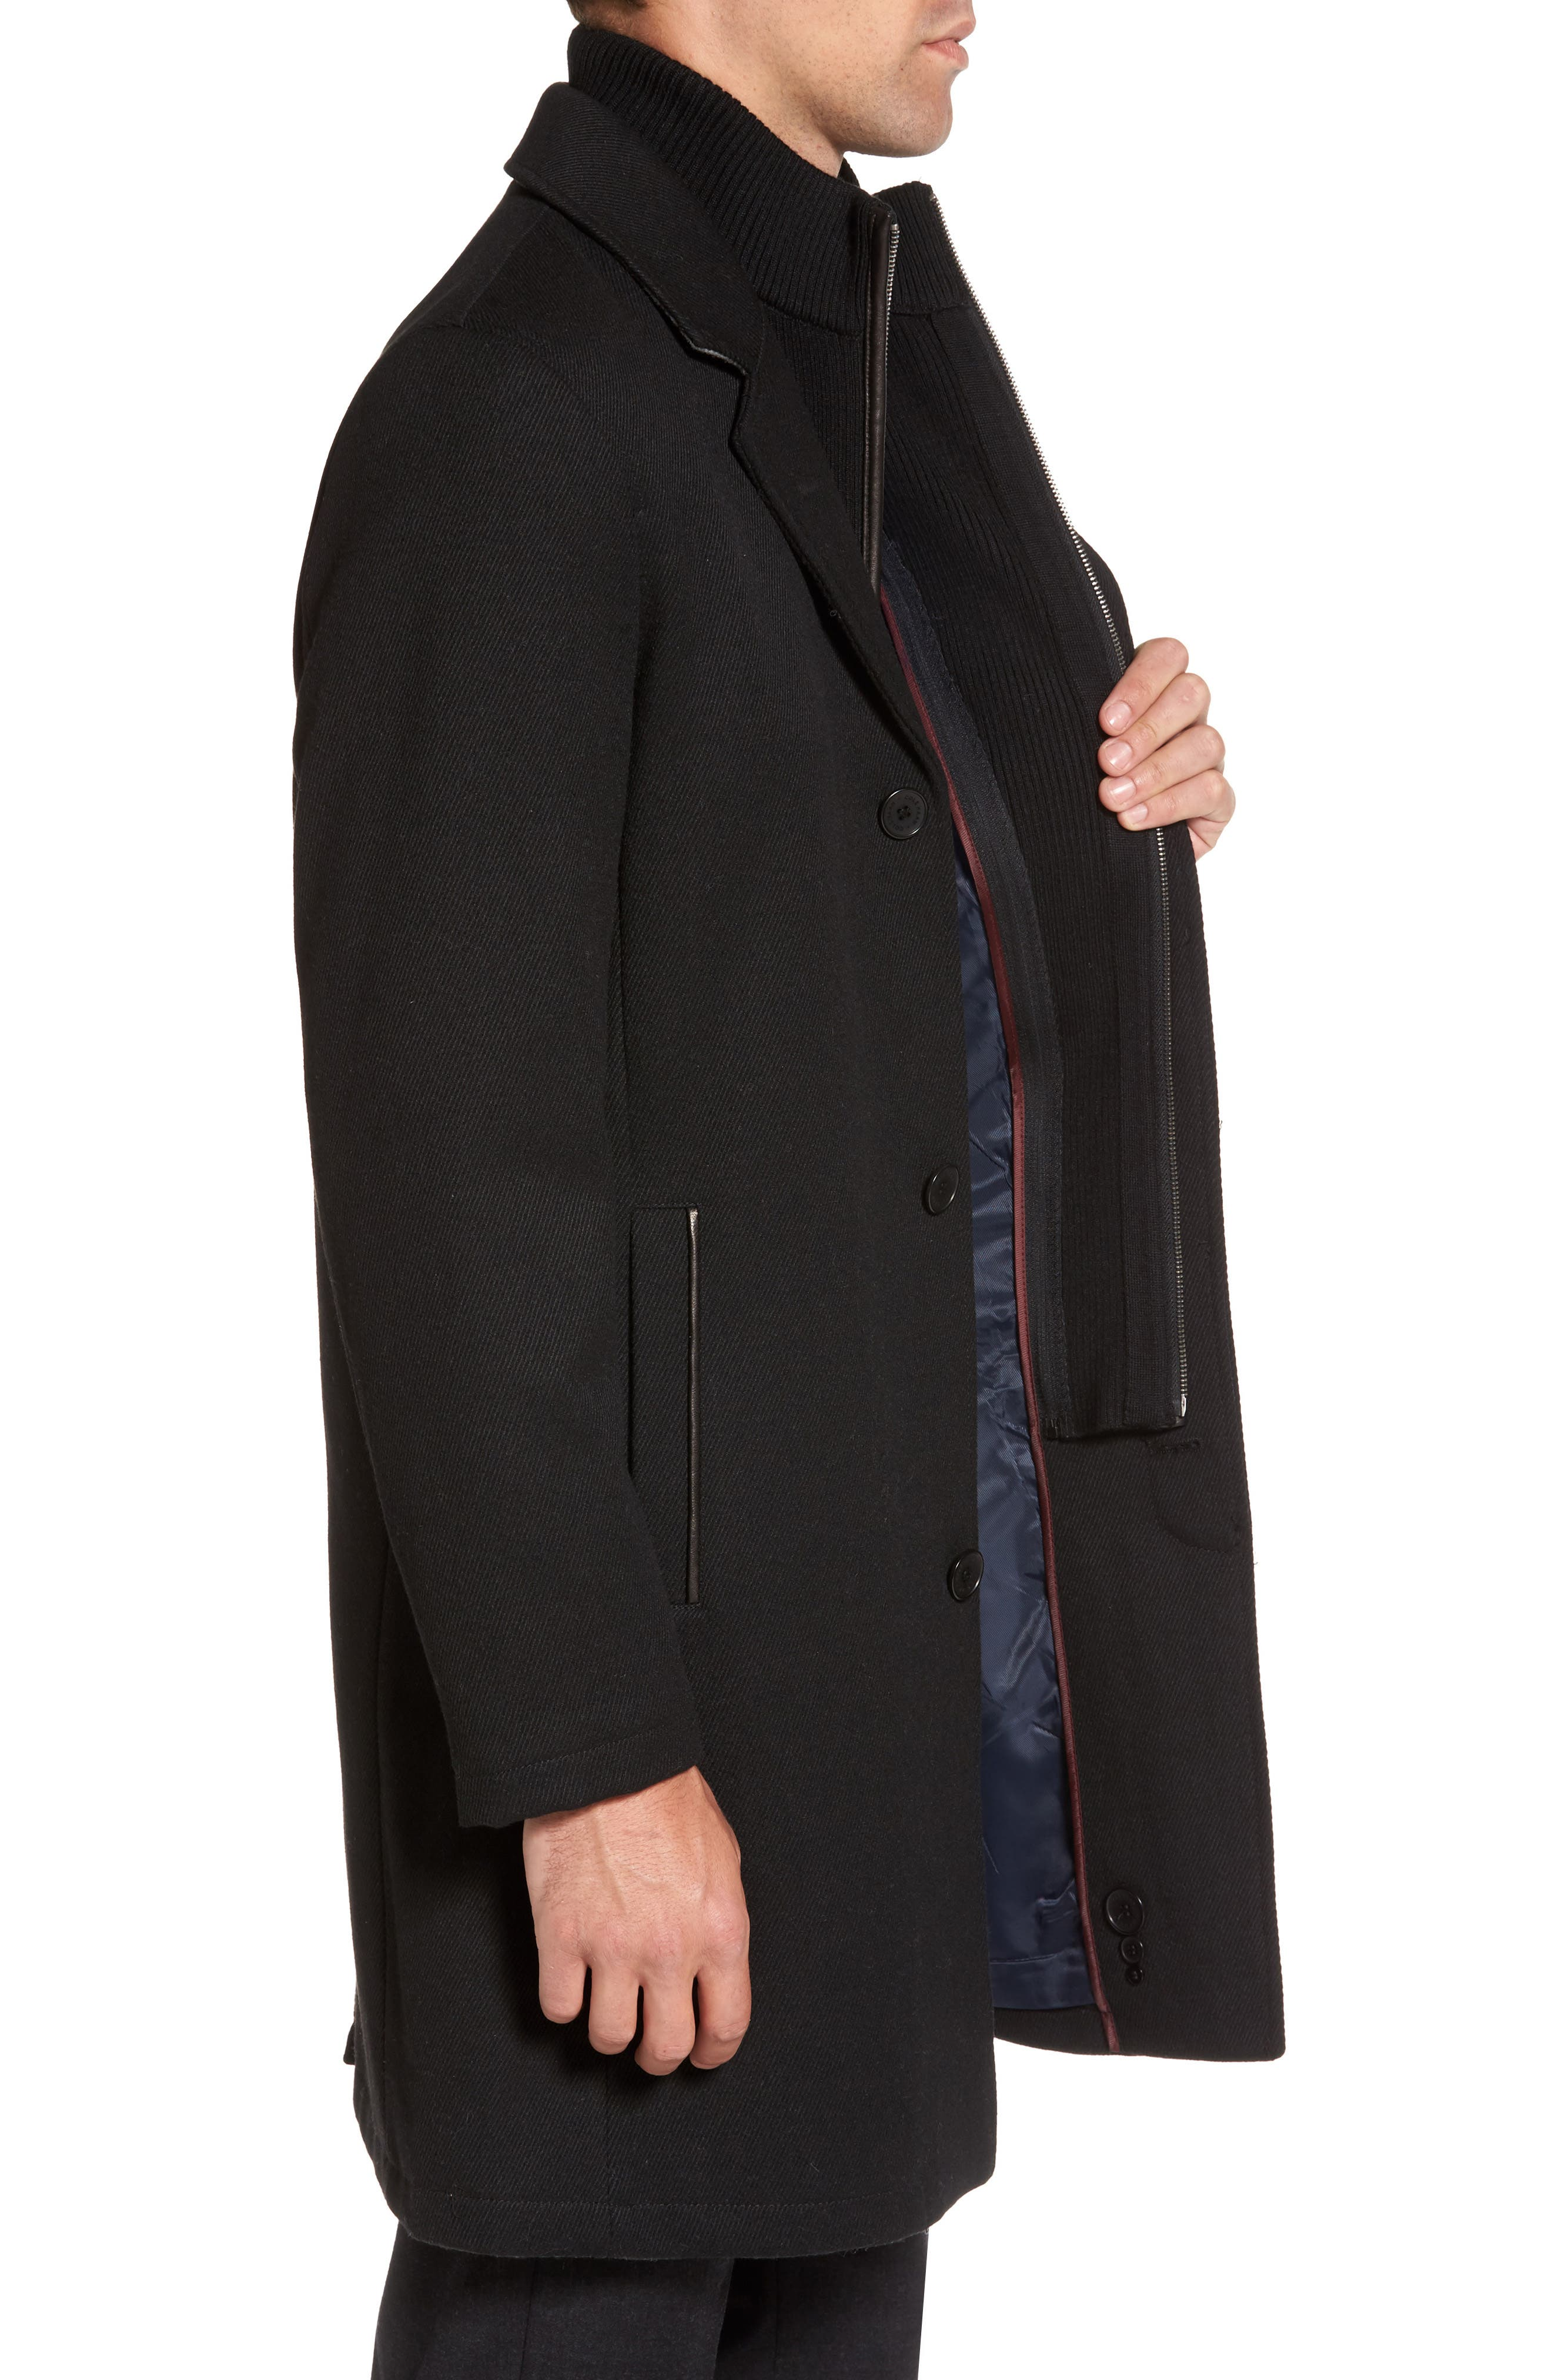 Modern Twill Topcoat with Removable Bib,                             Alternate thumbnail 4, color,                             Black